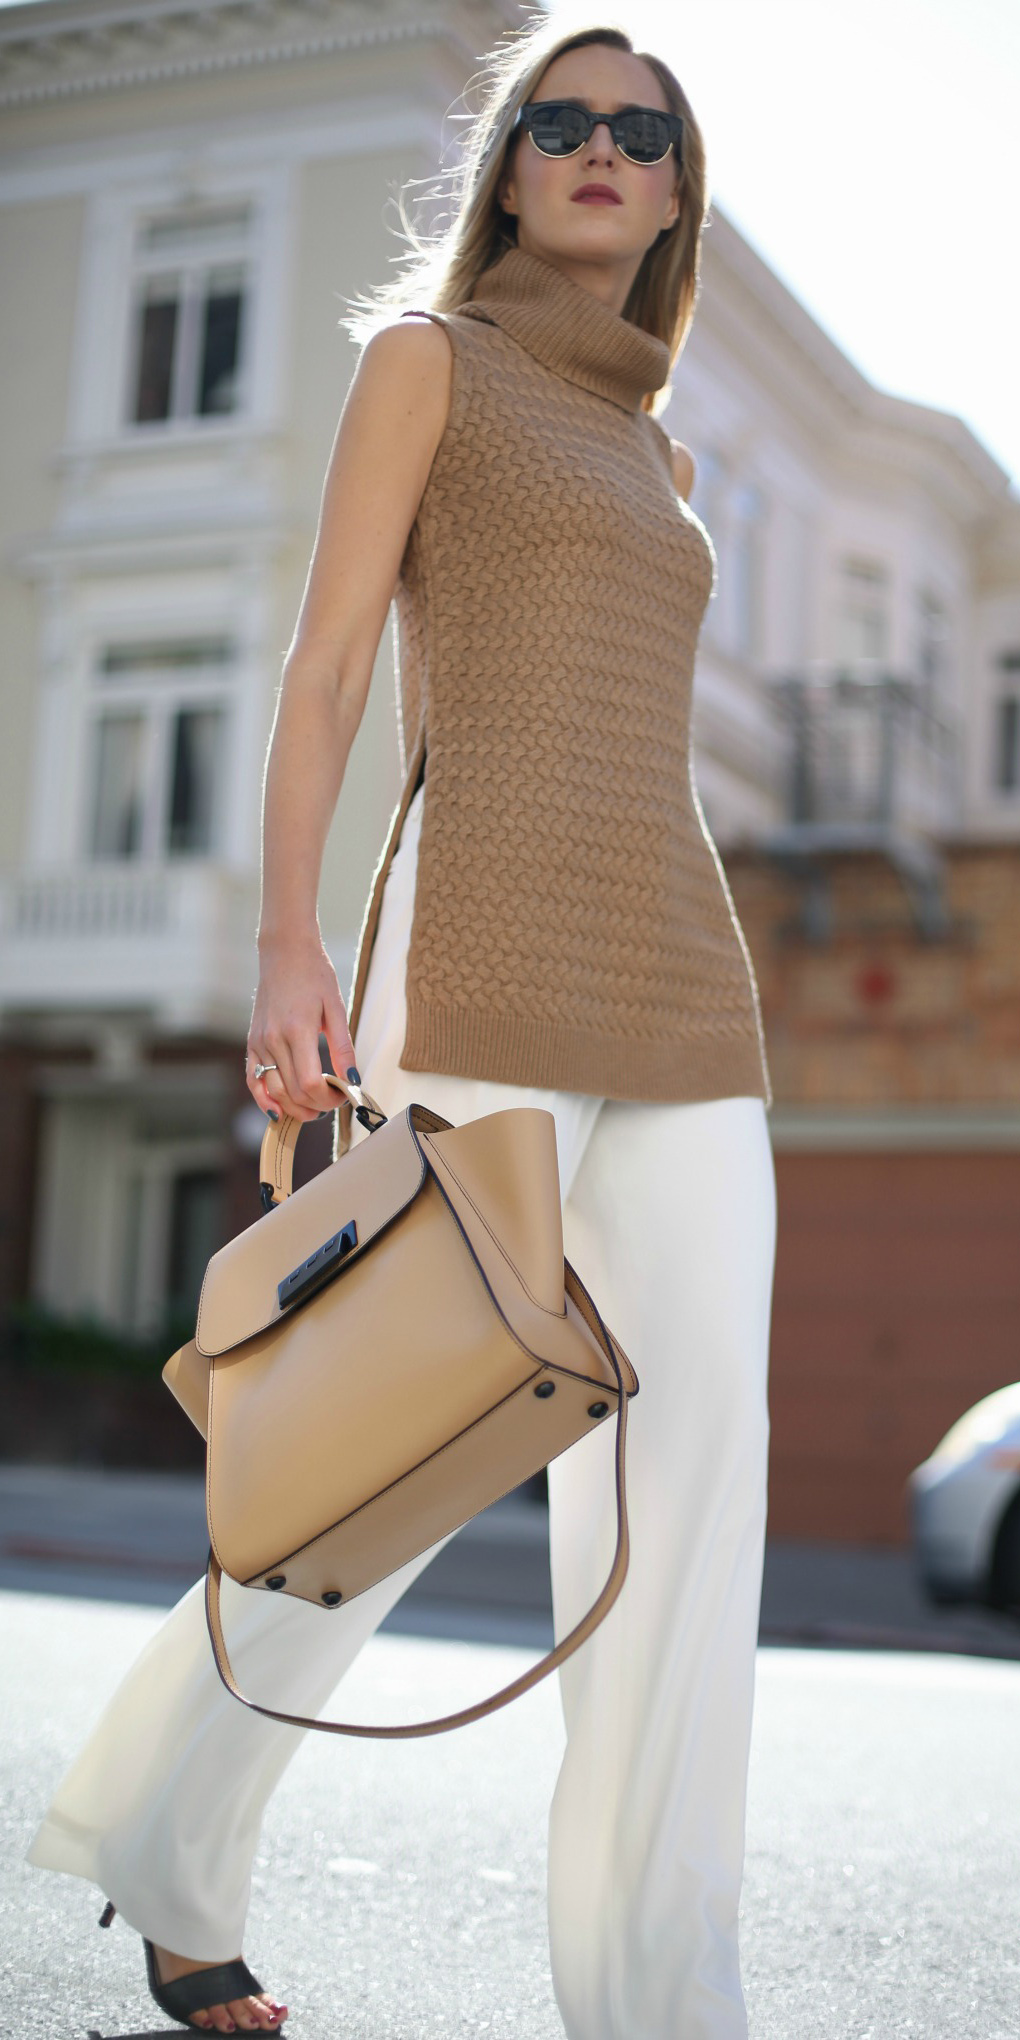 how-to-style-white-wideleg-pants-tan-bag-blonde-tan-sweater-sleeveless-black-shoe-sandalh-sun-fall-winter-fashion-work.jpg